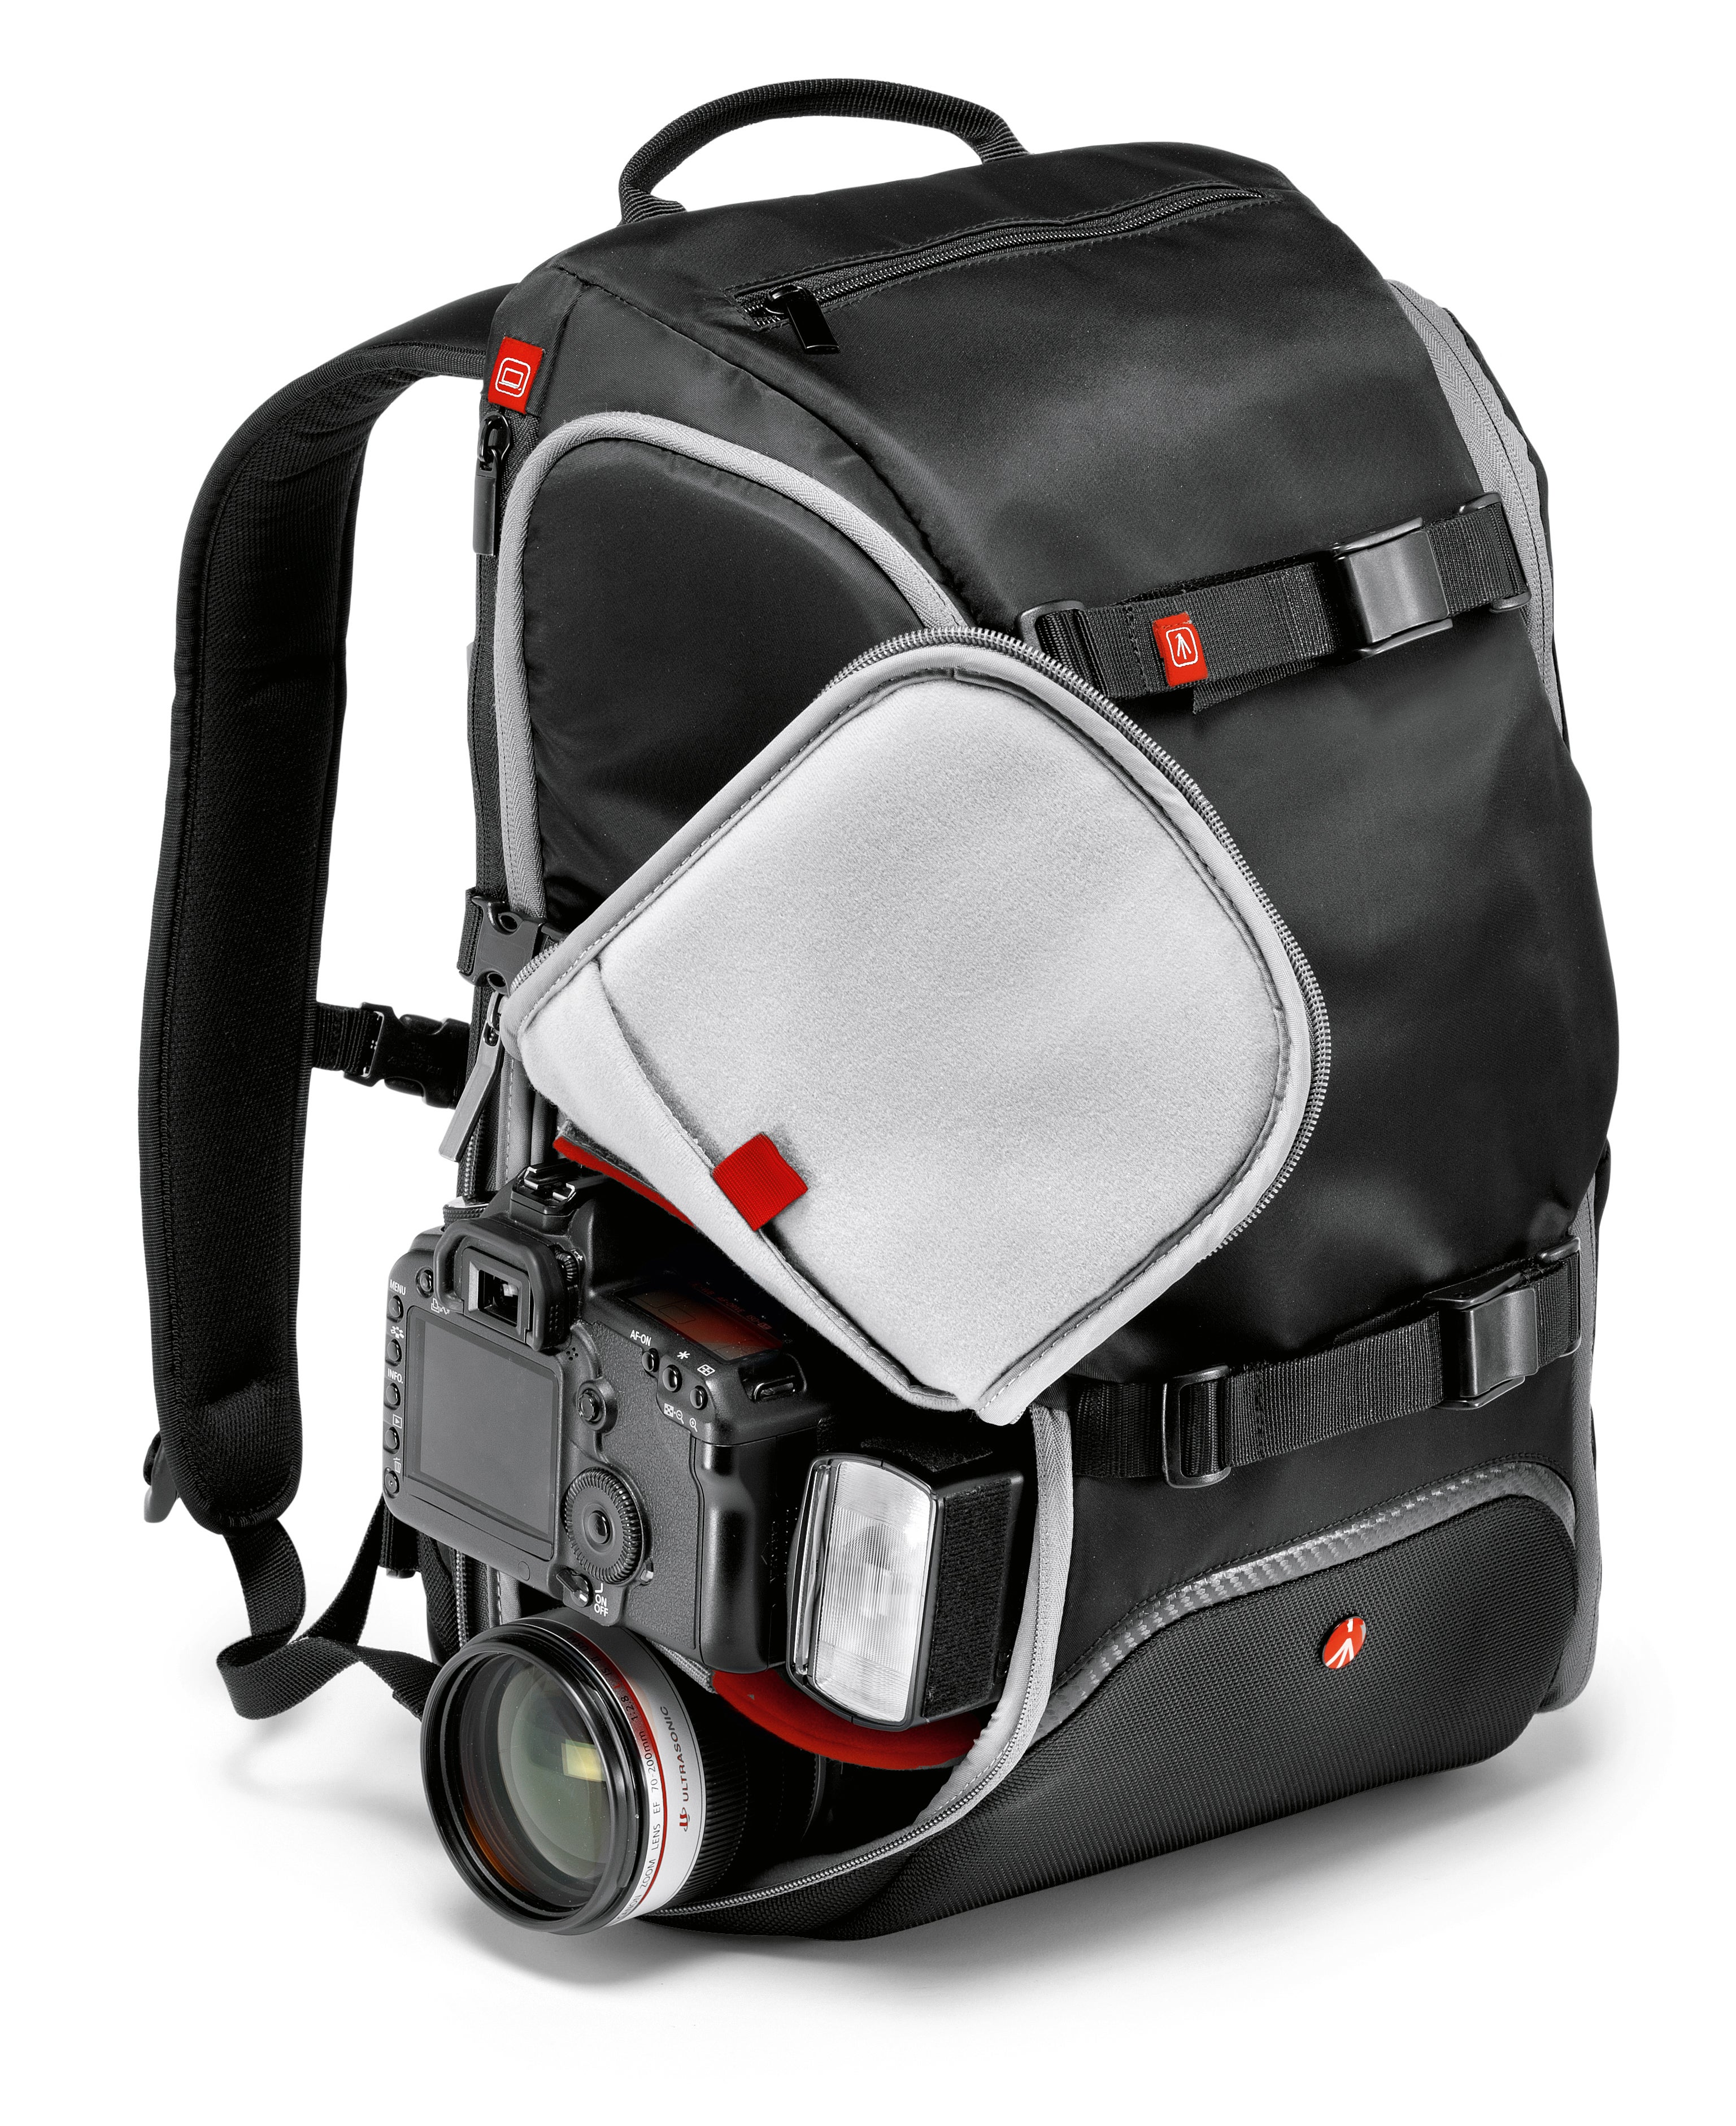 93cb650c67 Best Camera Bags 2019  11 top bags for photographers